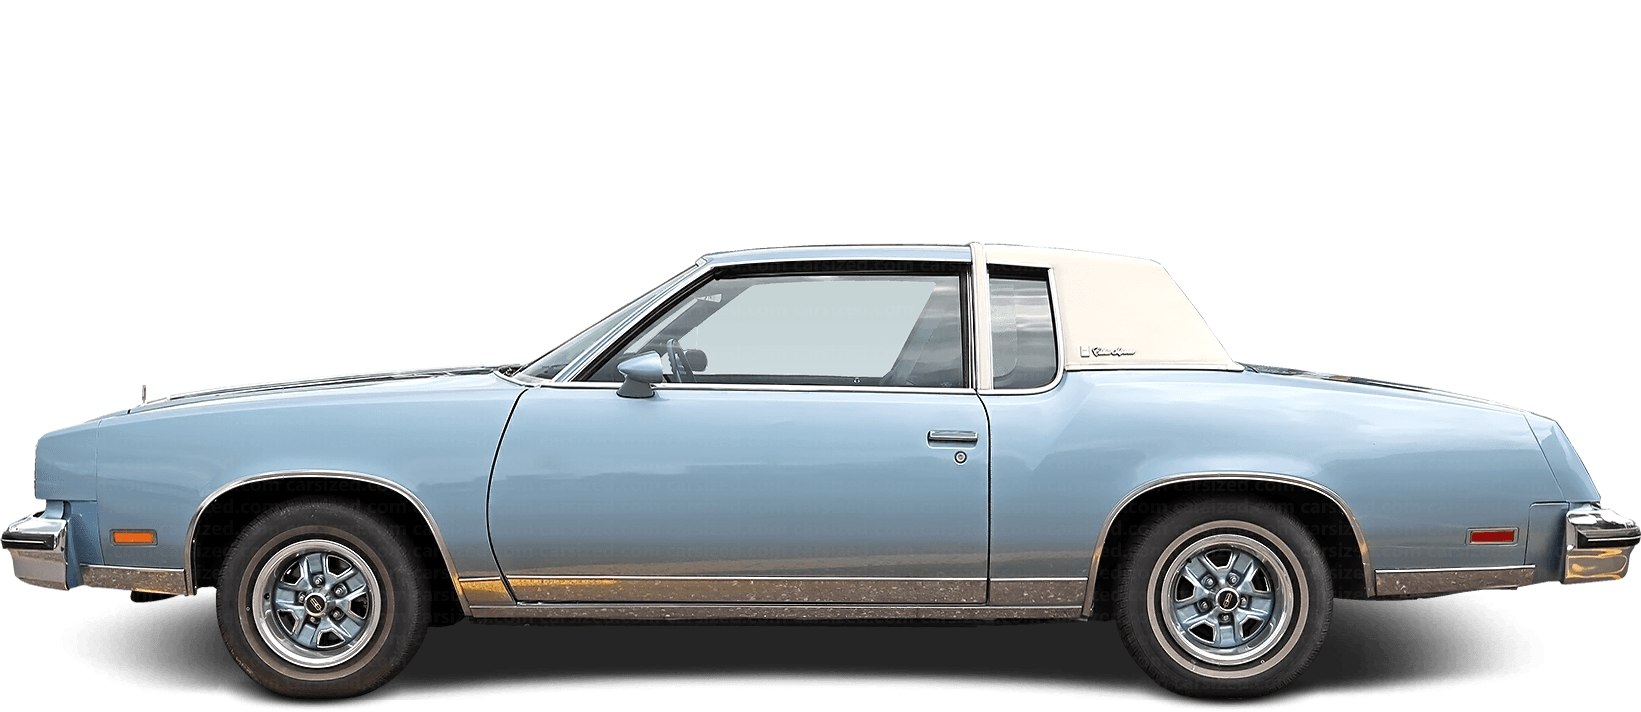 Oldsmobile Cutlass Supreme coupé 1977-1988